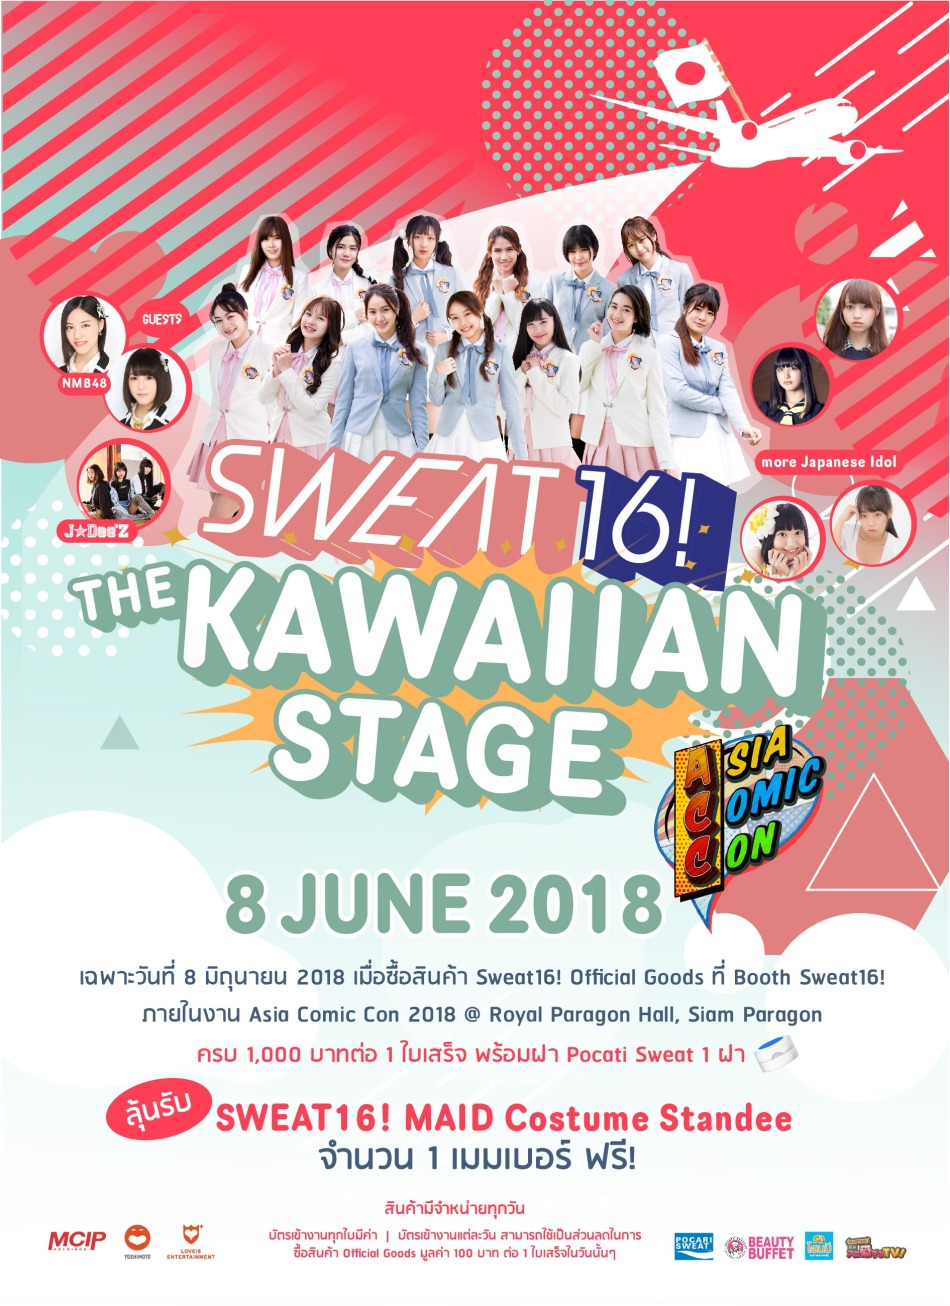 SWEAT16! The KAWAiiAN Stage